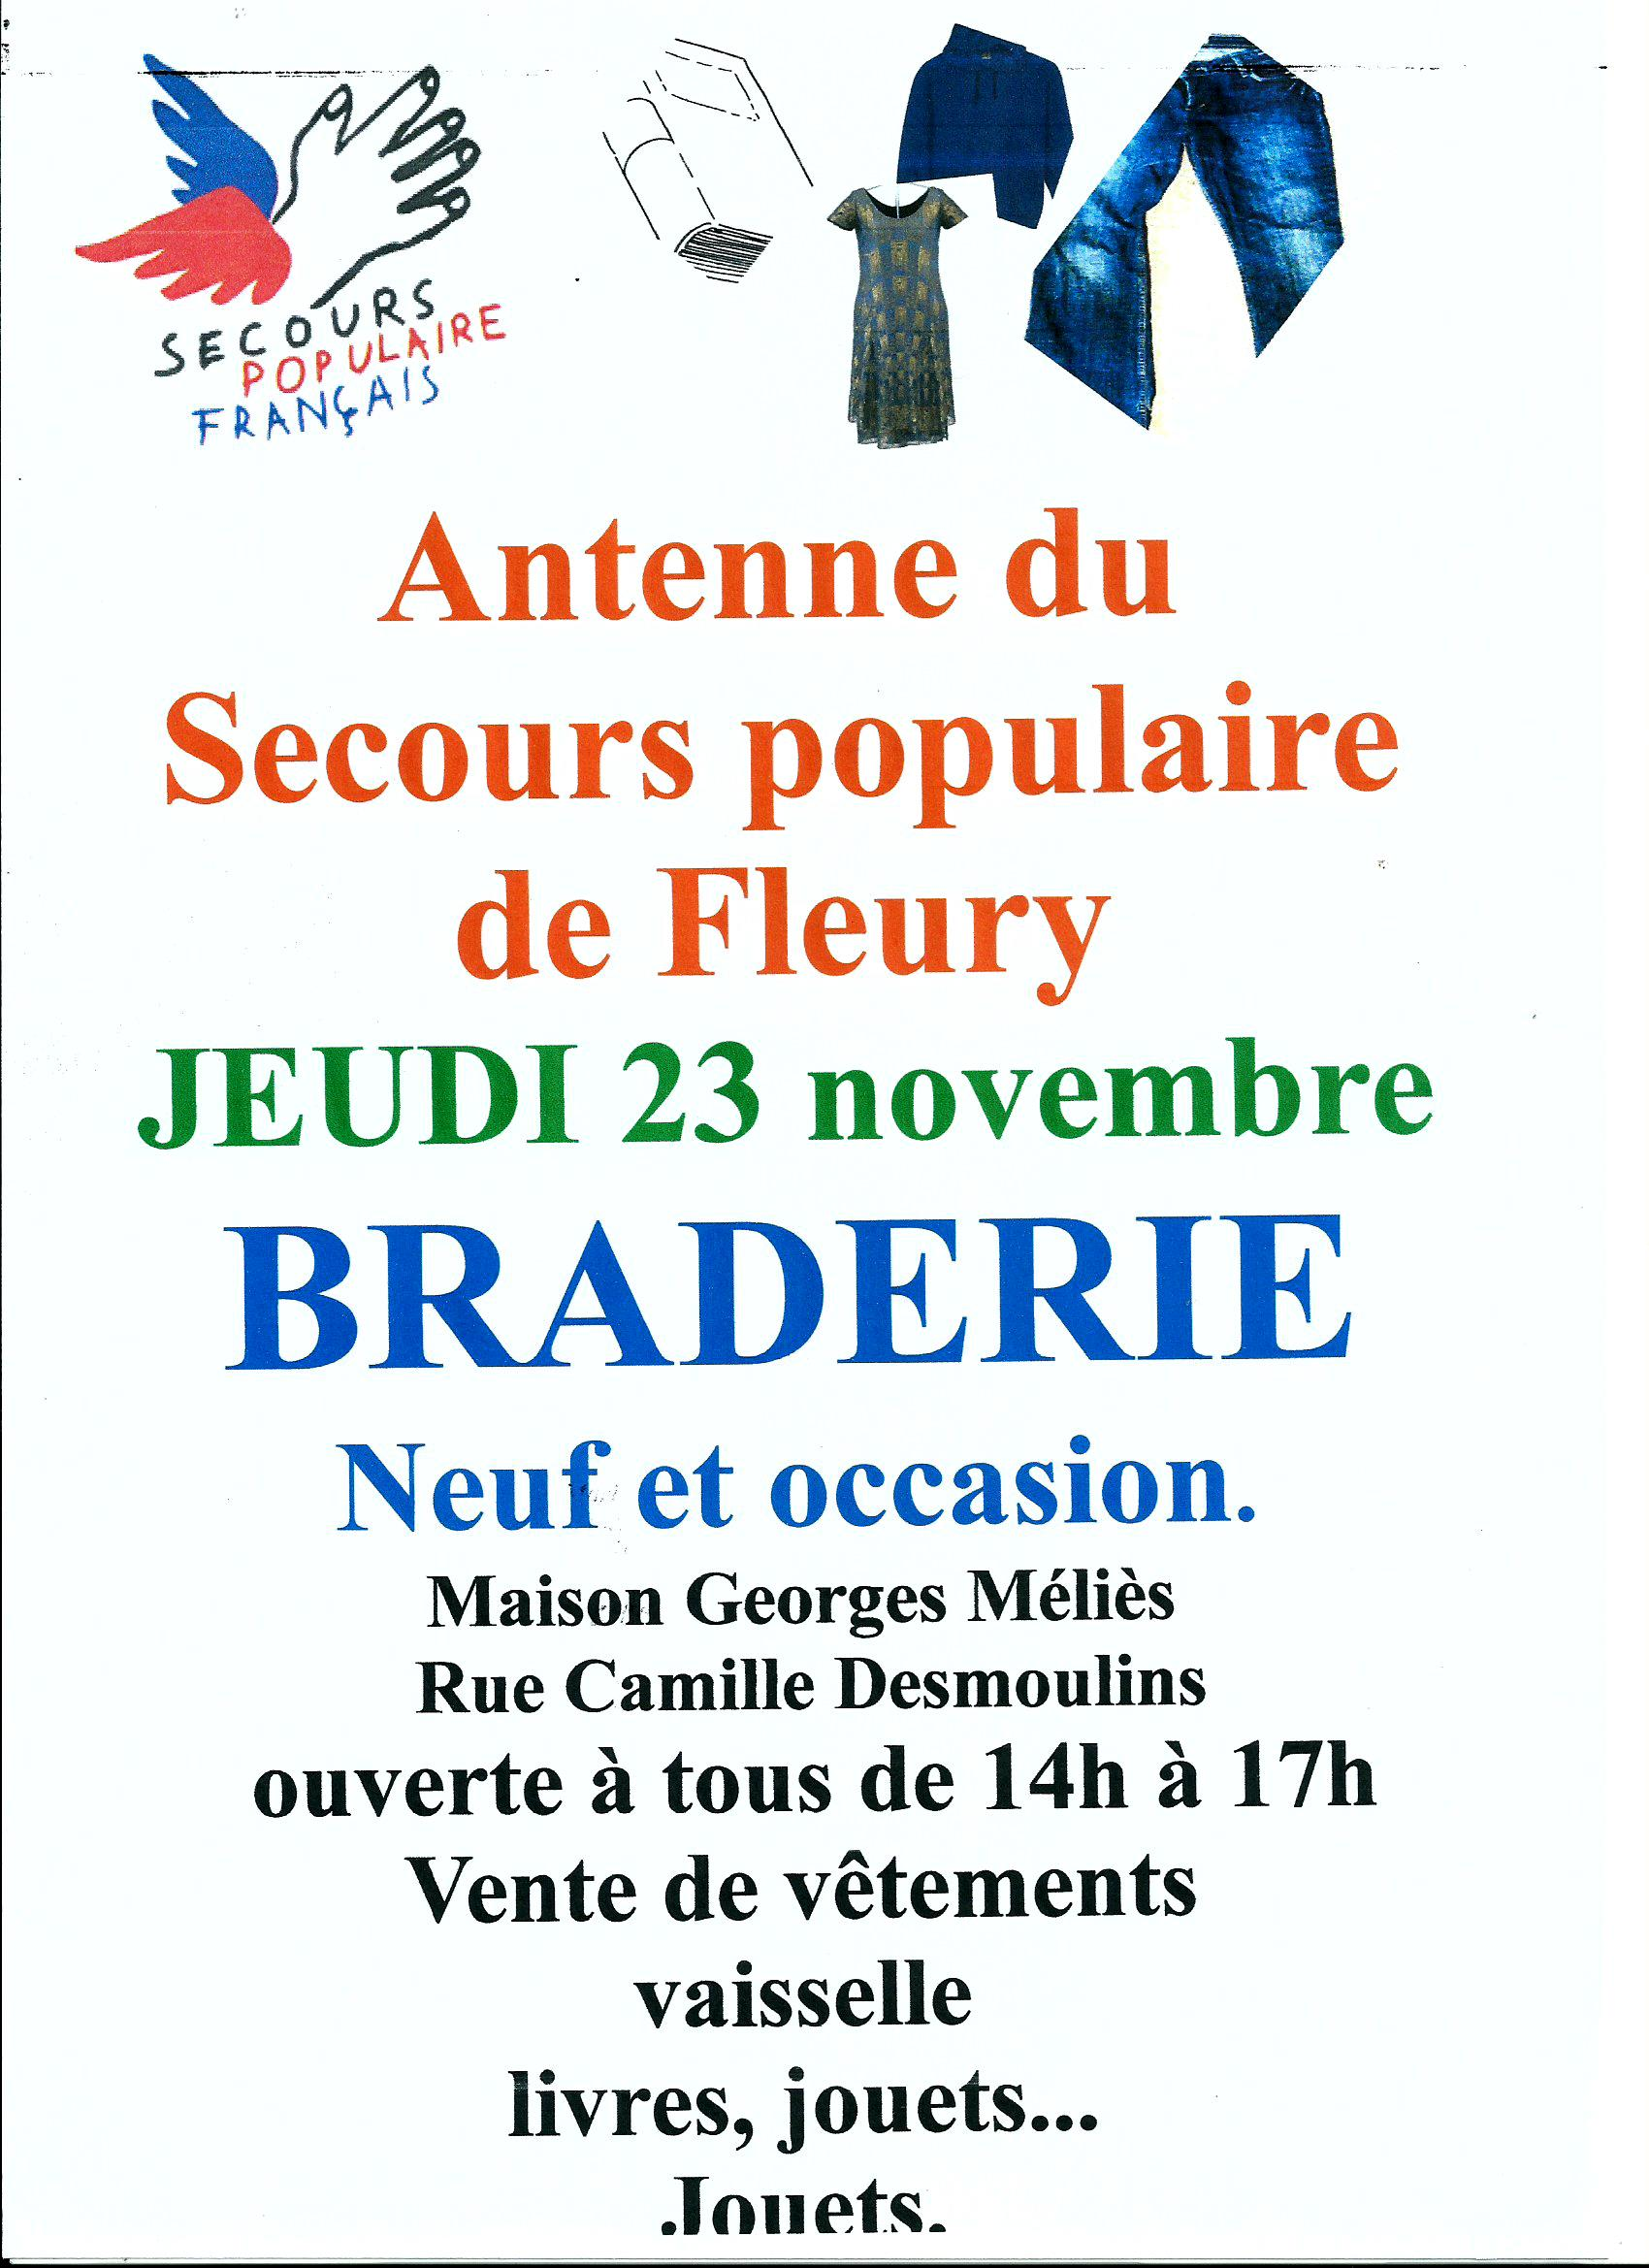 Scan Affiche Secours Populaire 2017 (23.11.2017).jpg